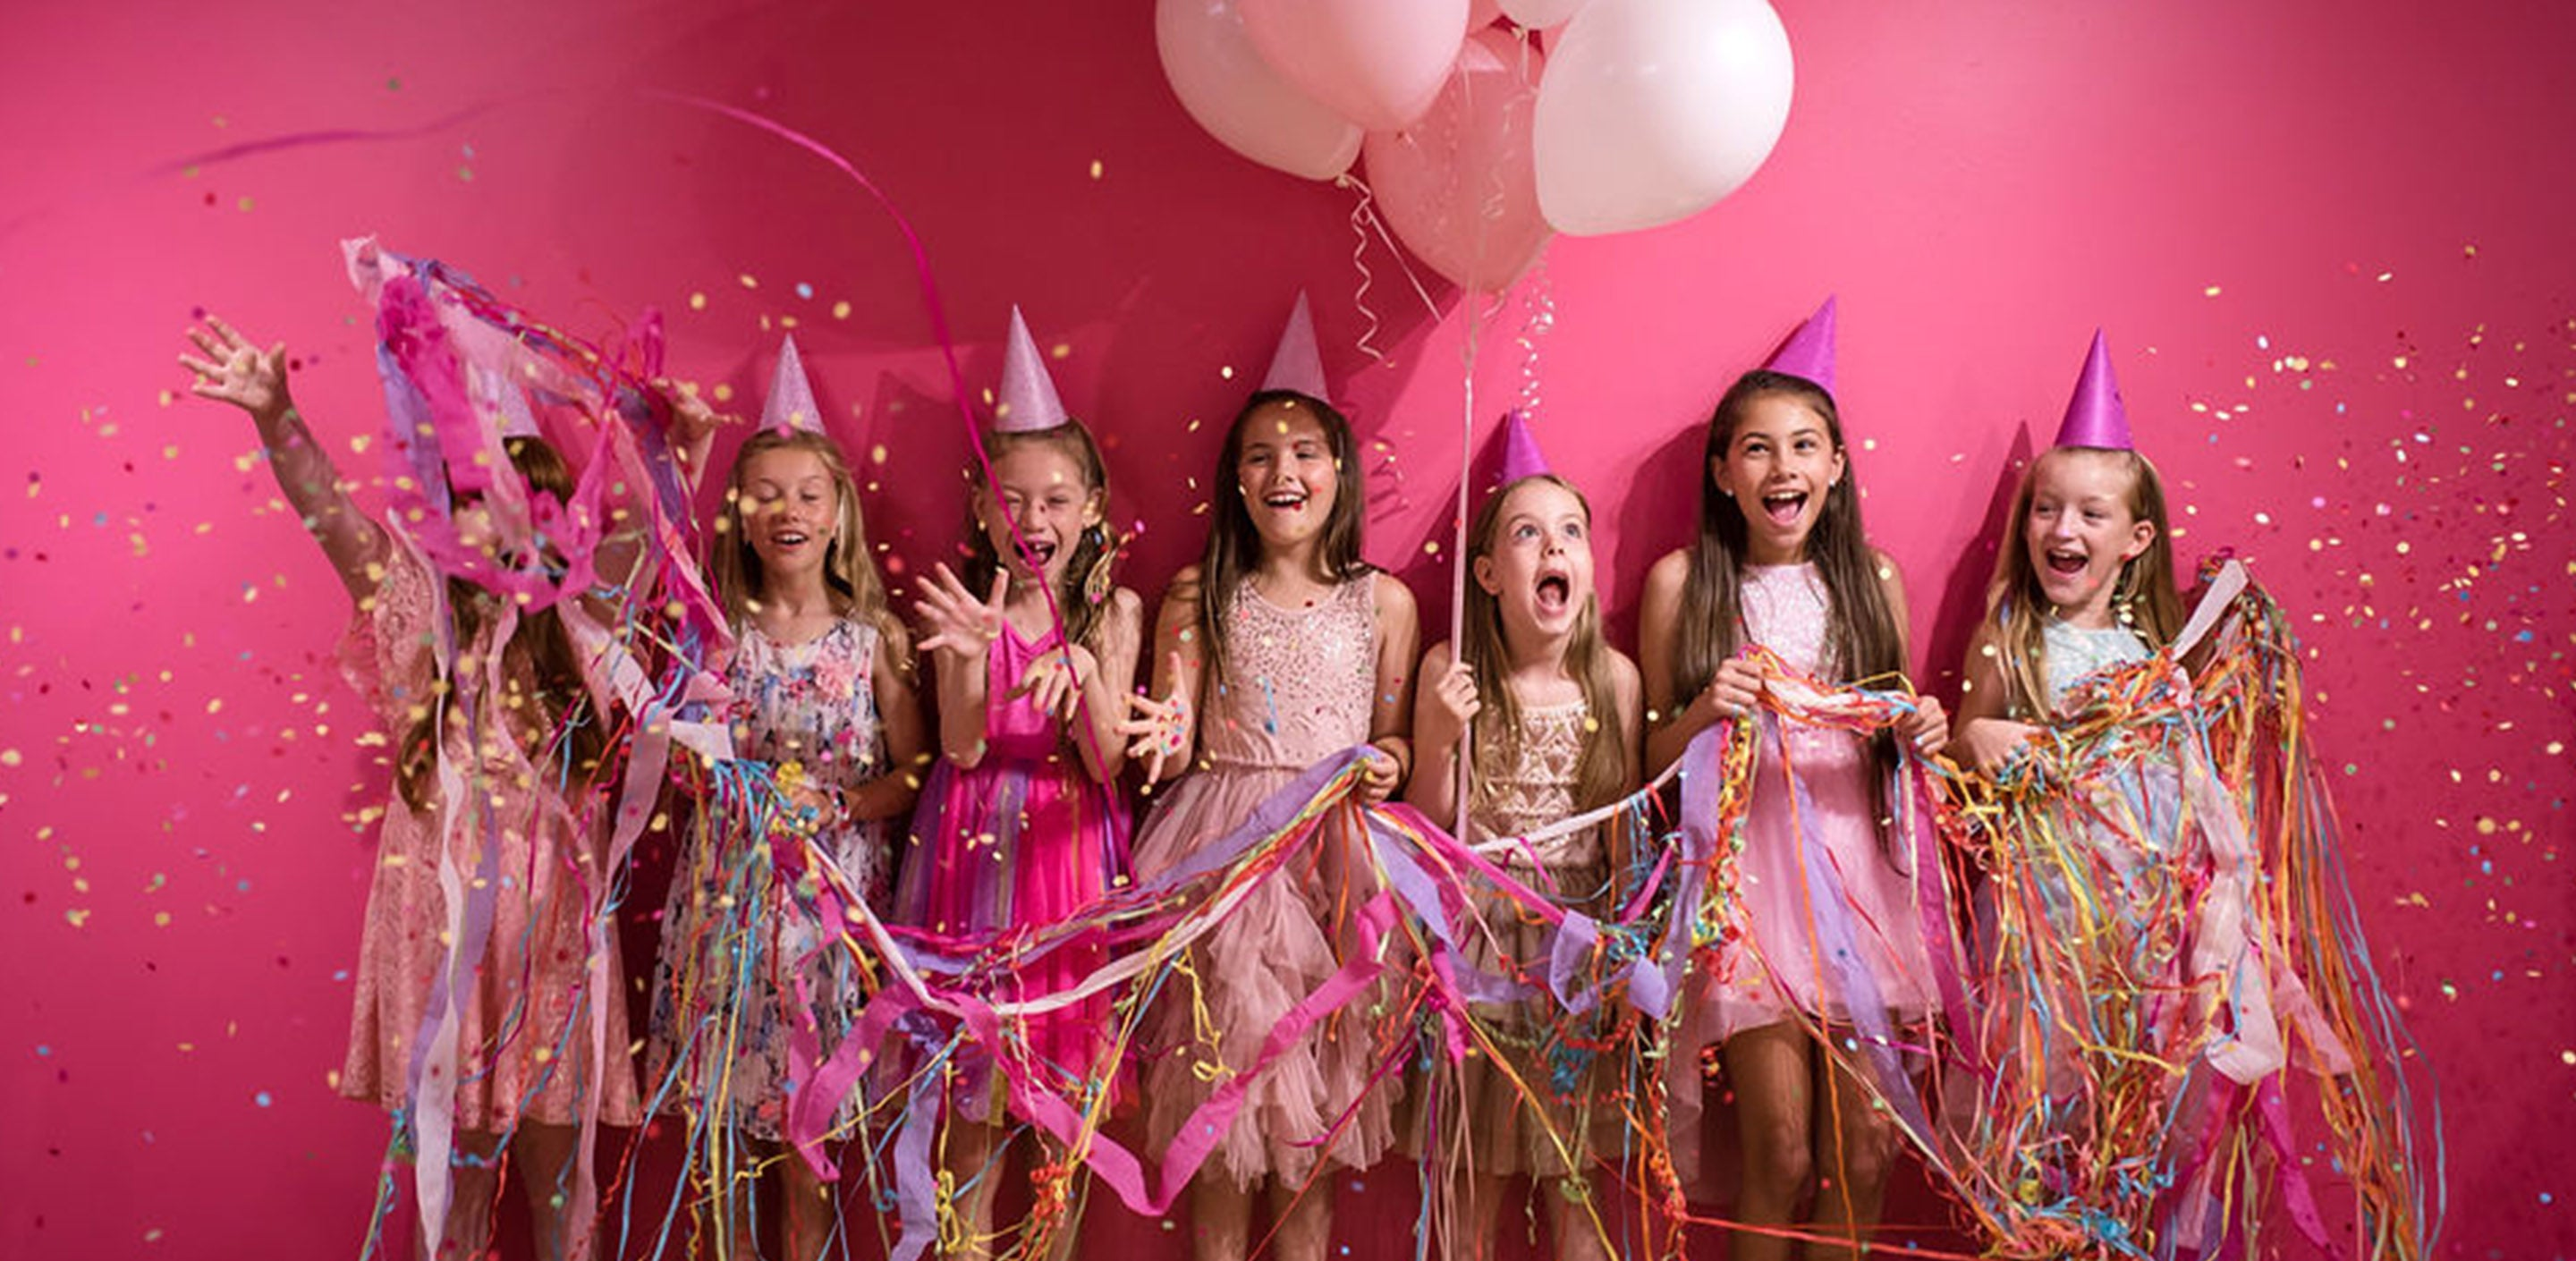 party-games-for-kids-pass-the-parcel-gold-coast-party-venue-pamper-parties-day-spa-for-kids